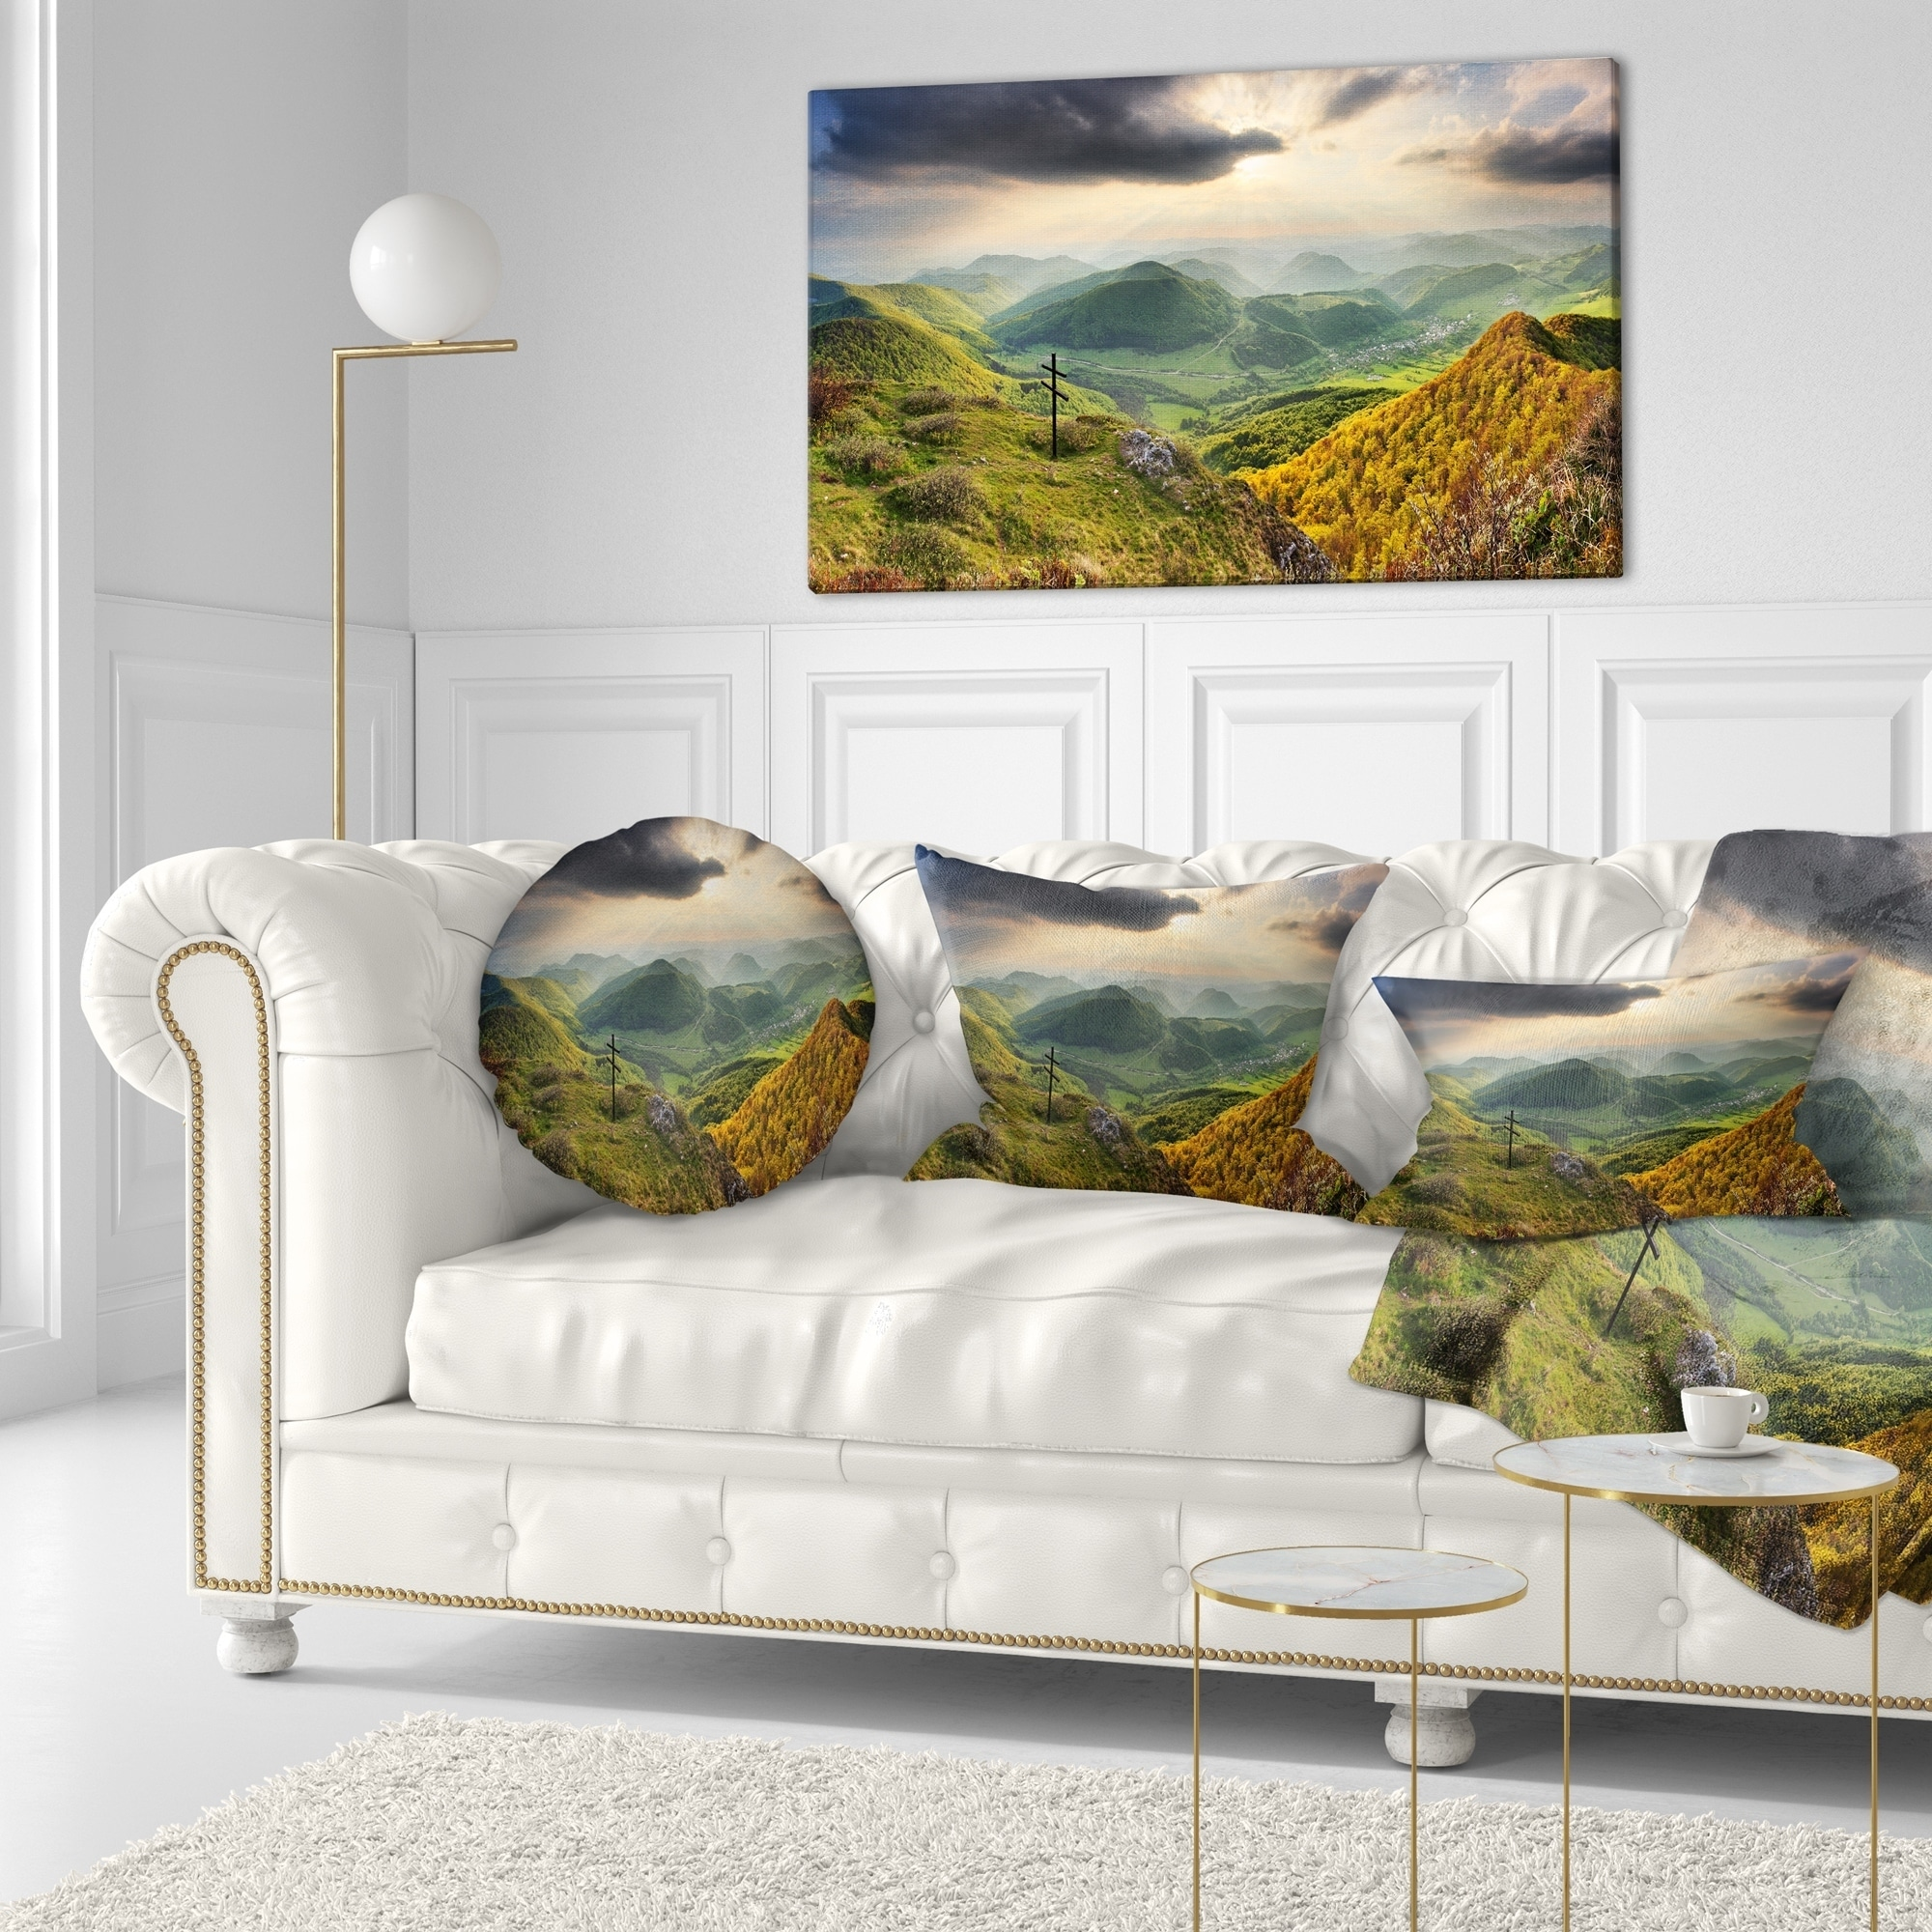 in x 16 in Sofa Throw Pillow 16 in Designart CU14269-16-16 Slovakia Spring Forest Mountain Landscape Printed Cushion Cover for Living Room